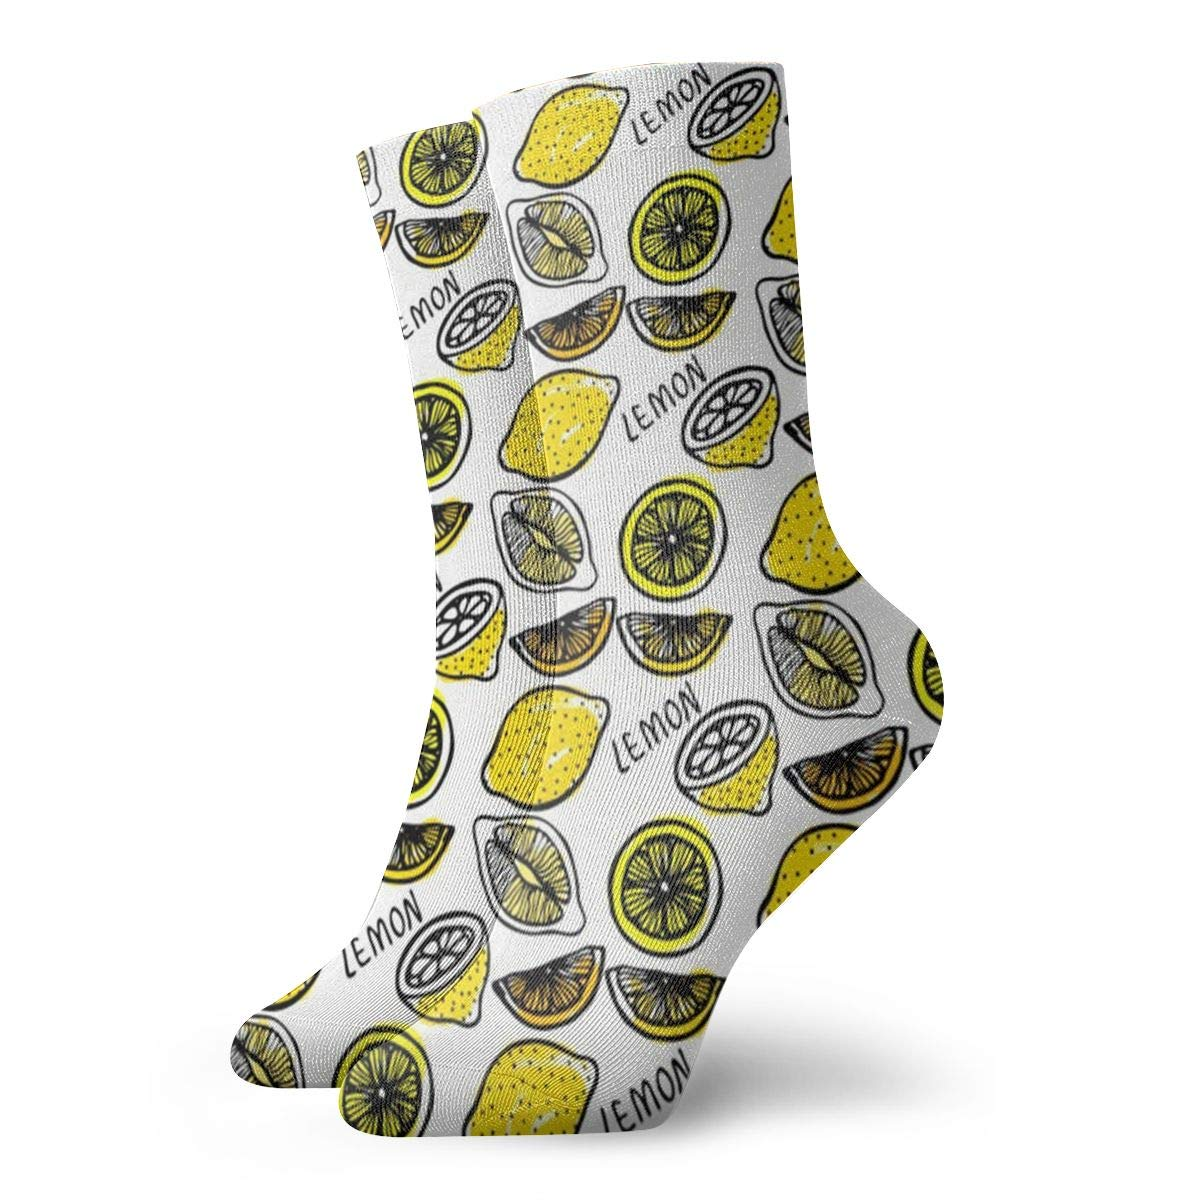 Hand-drawn-lemons Unisex Funny Casual Crew Socks Athletic Socks For Boys Girls Kids Teenagers